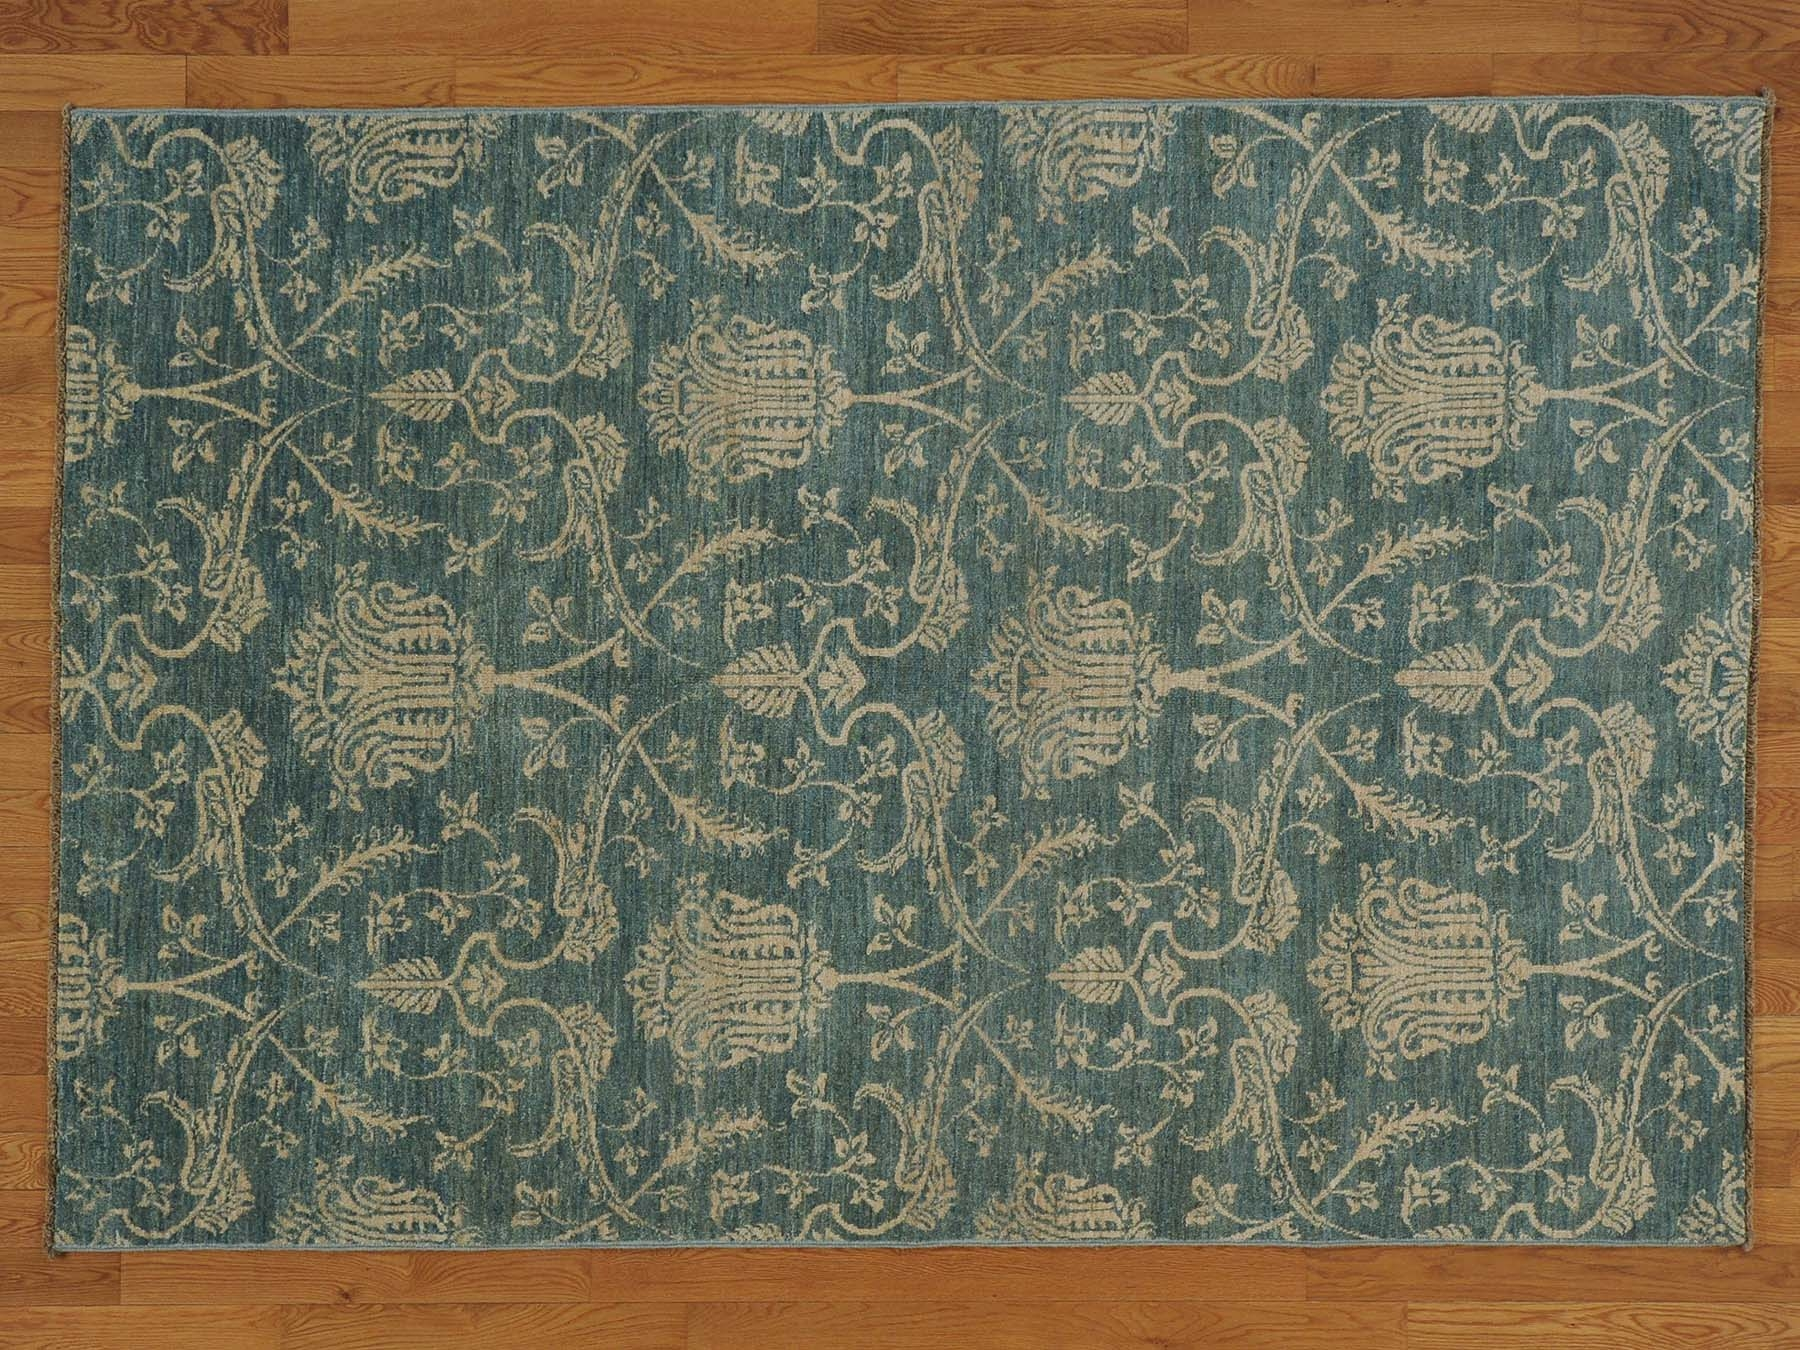 55 X 8 Denim Blue Transitional Hand Knotted 100 Wool Oriental Pertaining To Knotted Wool Rugs (Image 2 of 15)